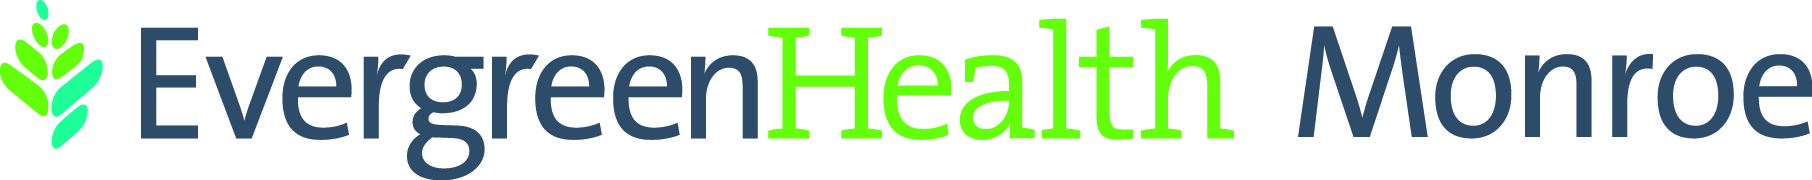 EvergreenHealth Monroe - Breast Center